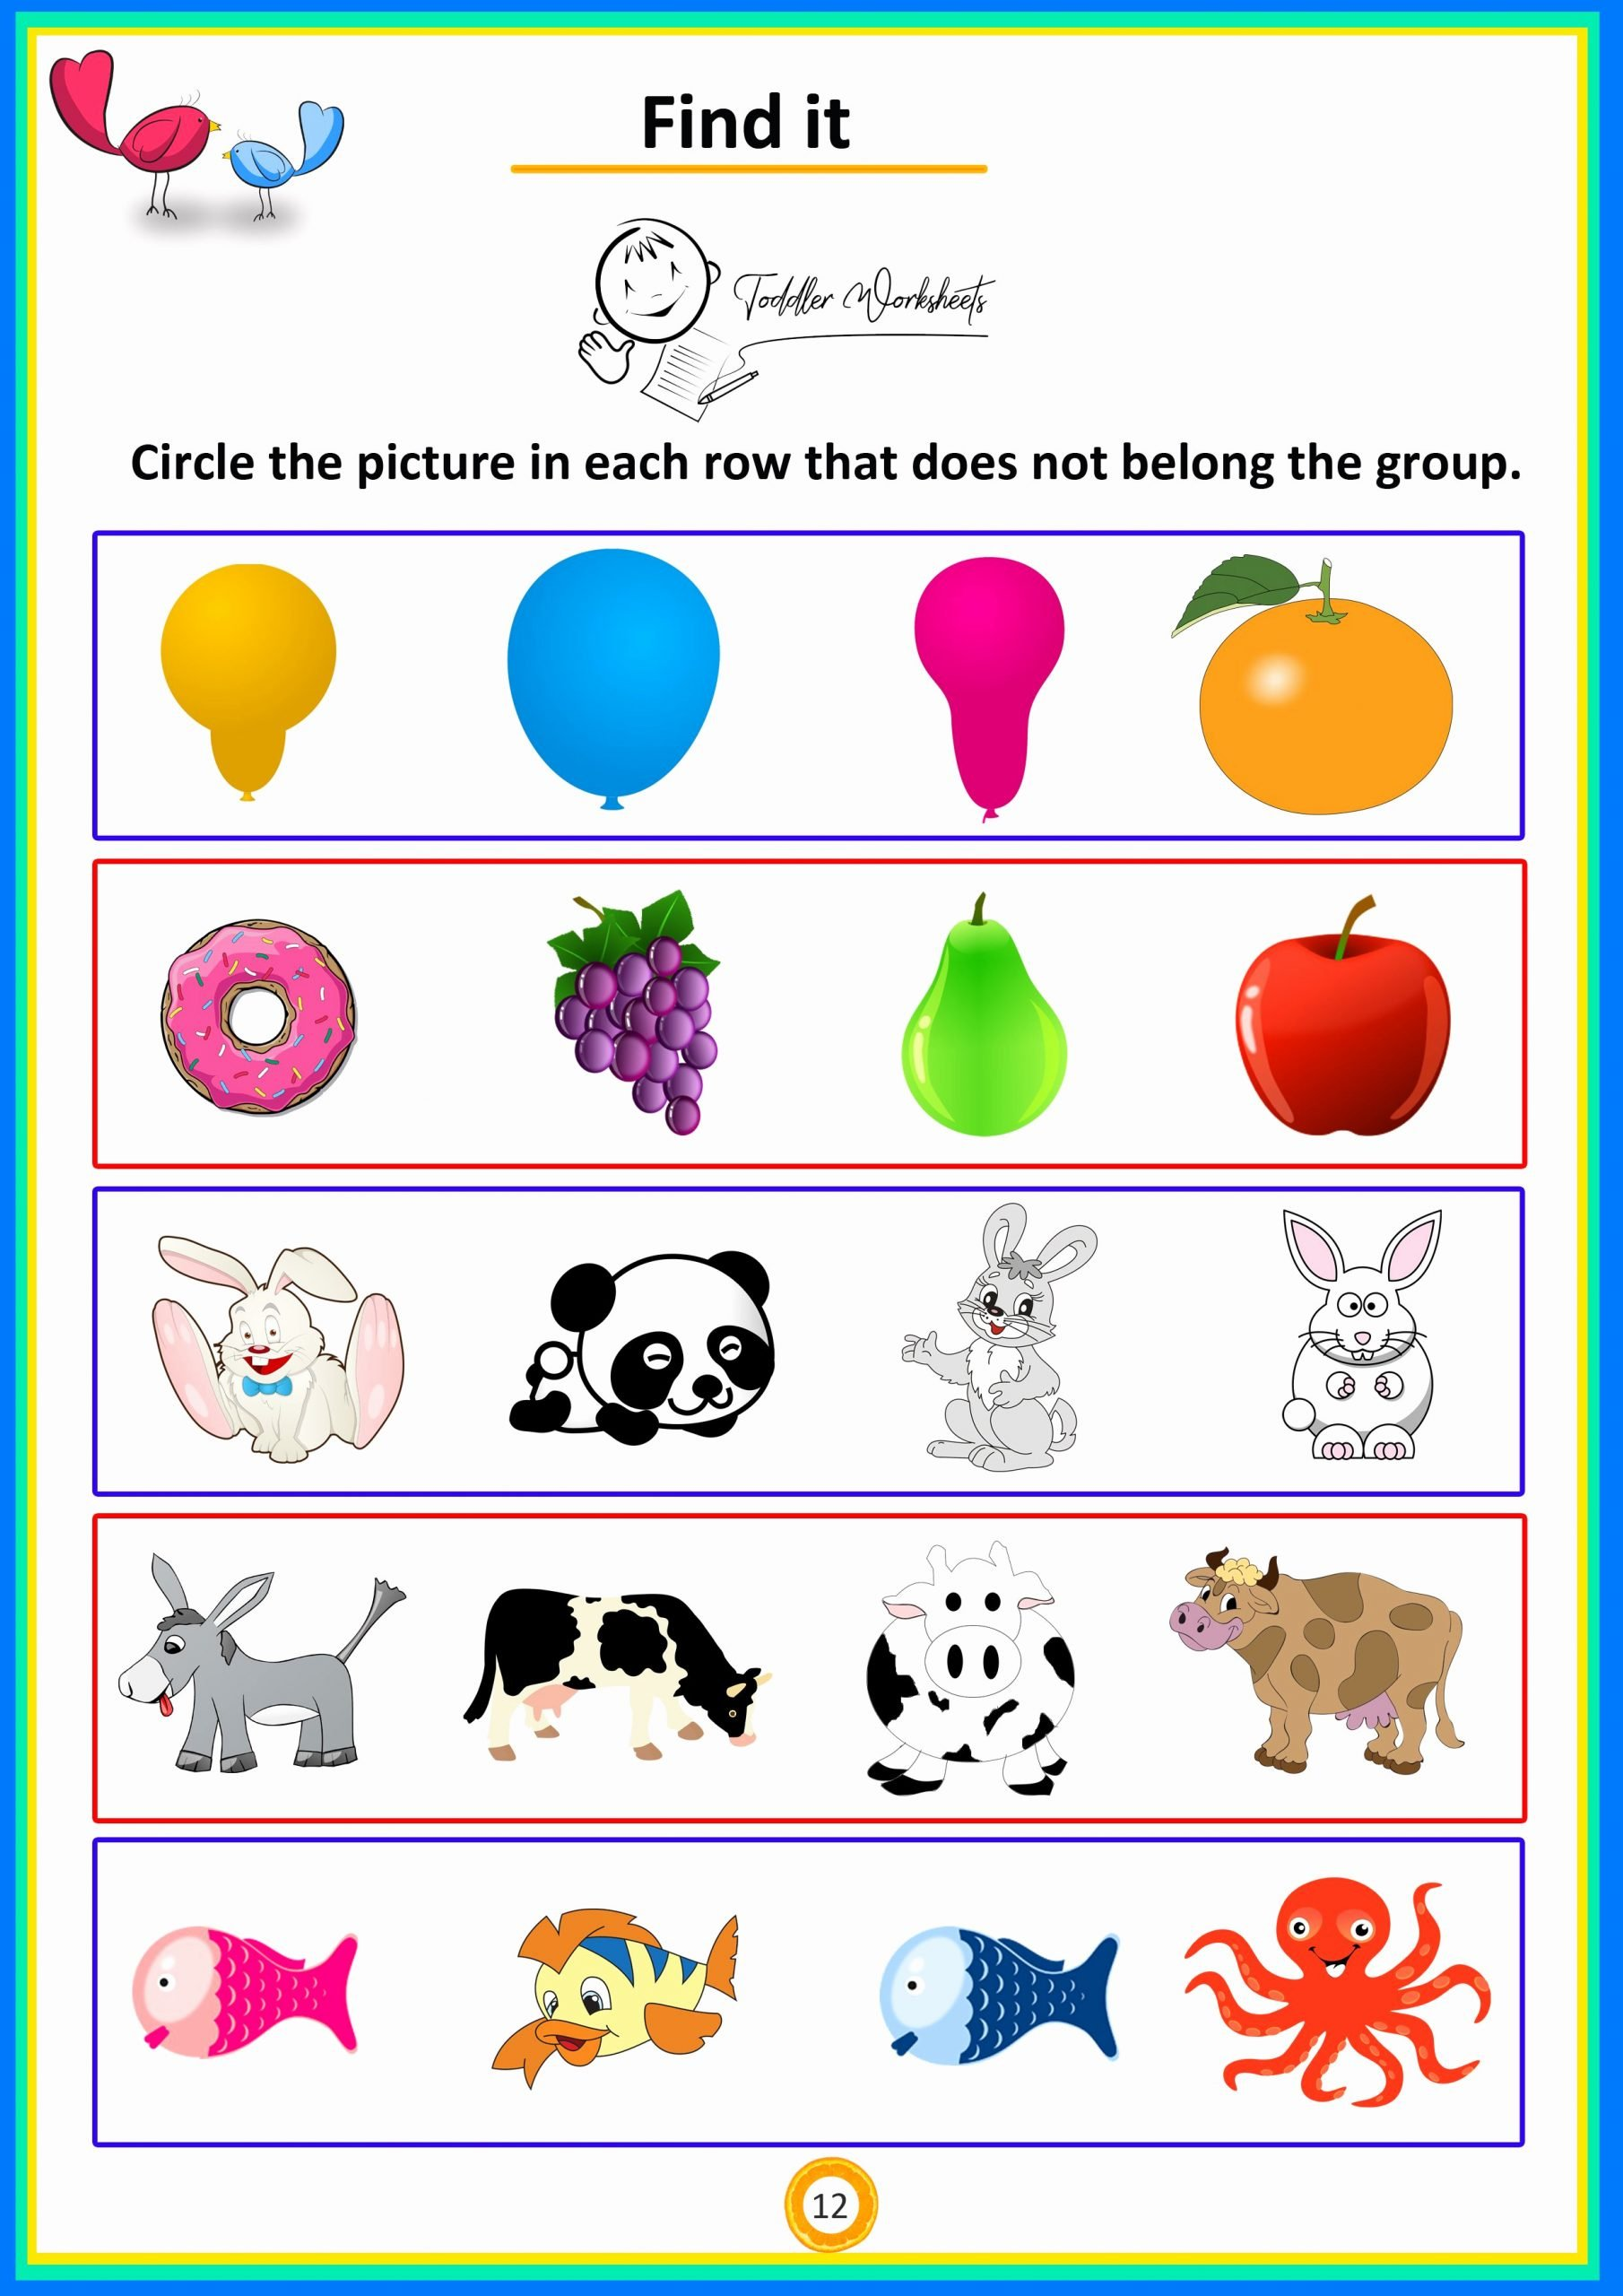 Worksheets for Preschoolers Free Download Inspirational Find It 4 Preschool toddler Math Worksheets Free